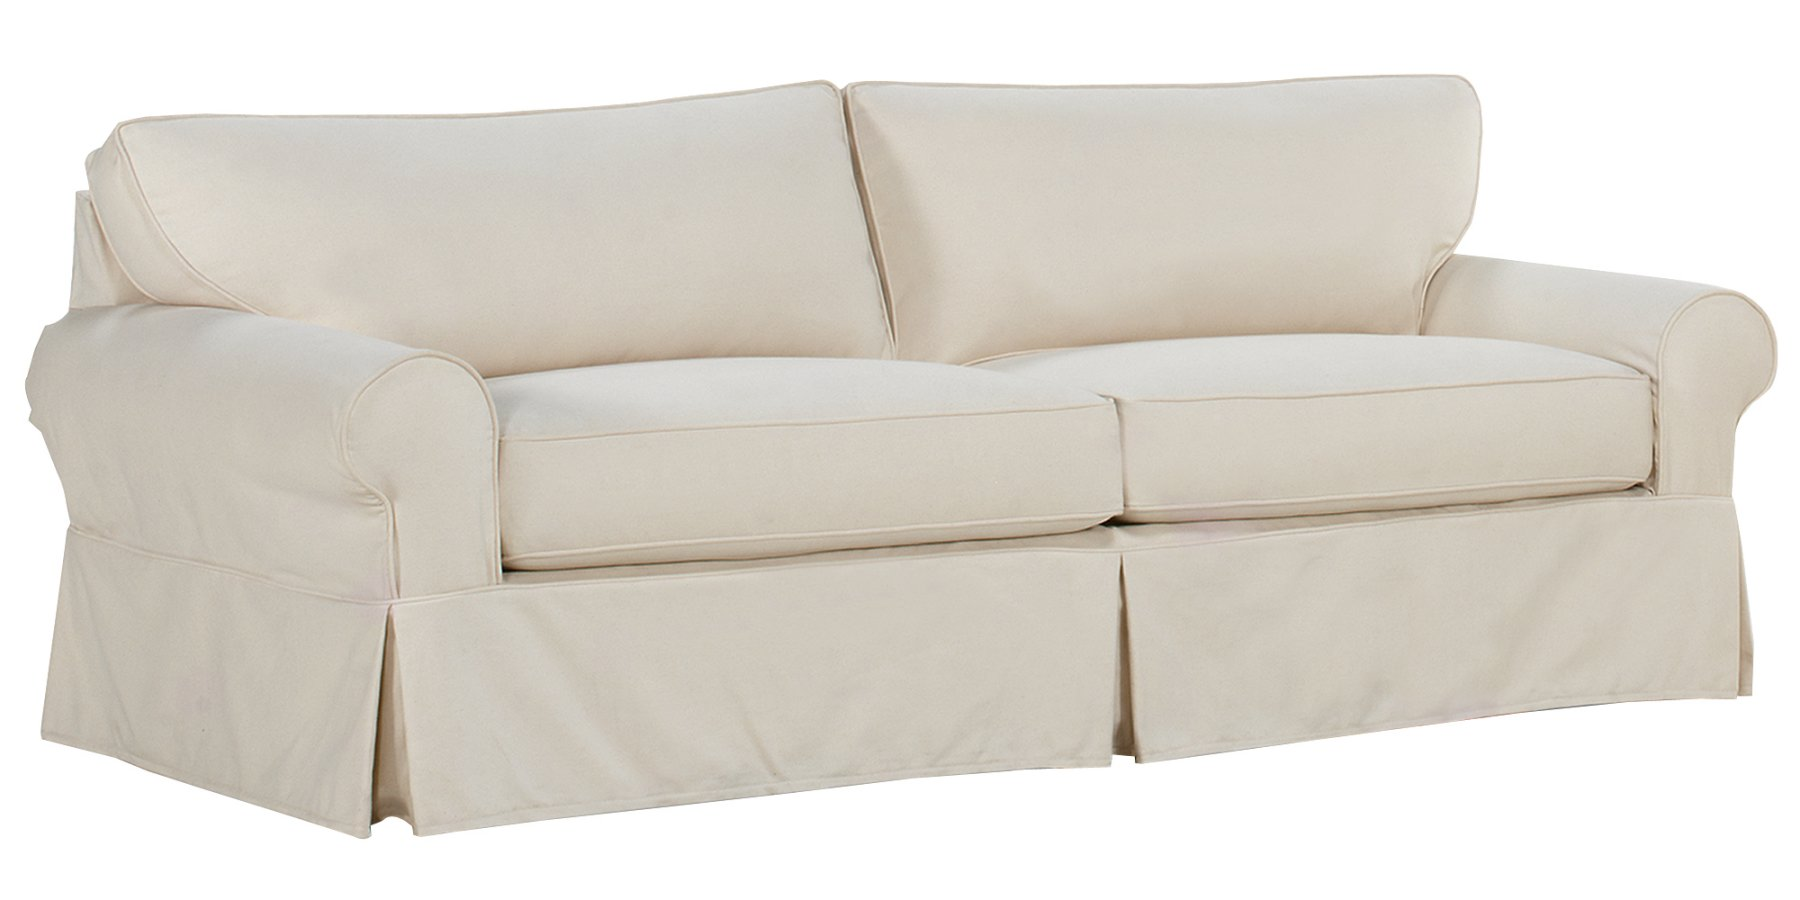 Oversized sofas and sofa slipcover furniture online for Furniture sofas and couches